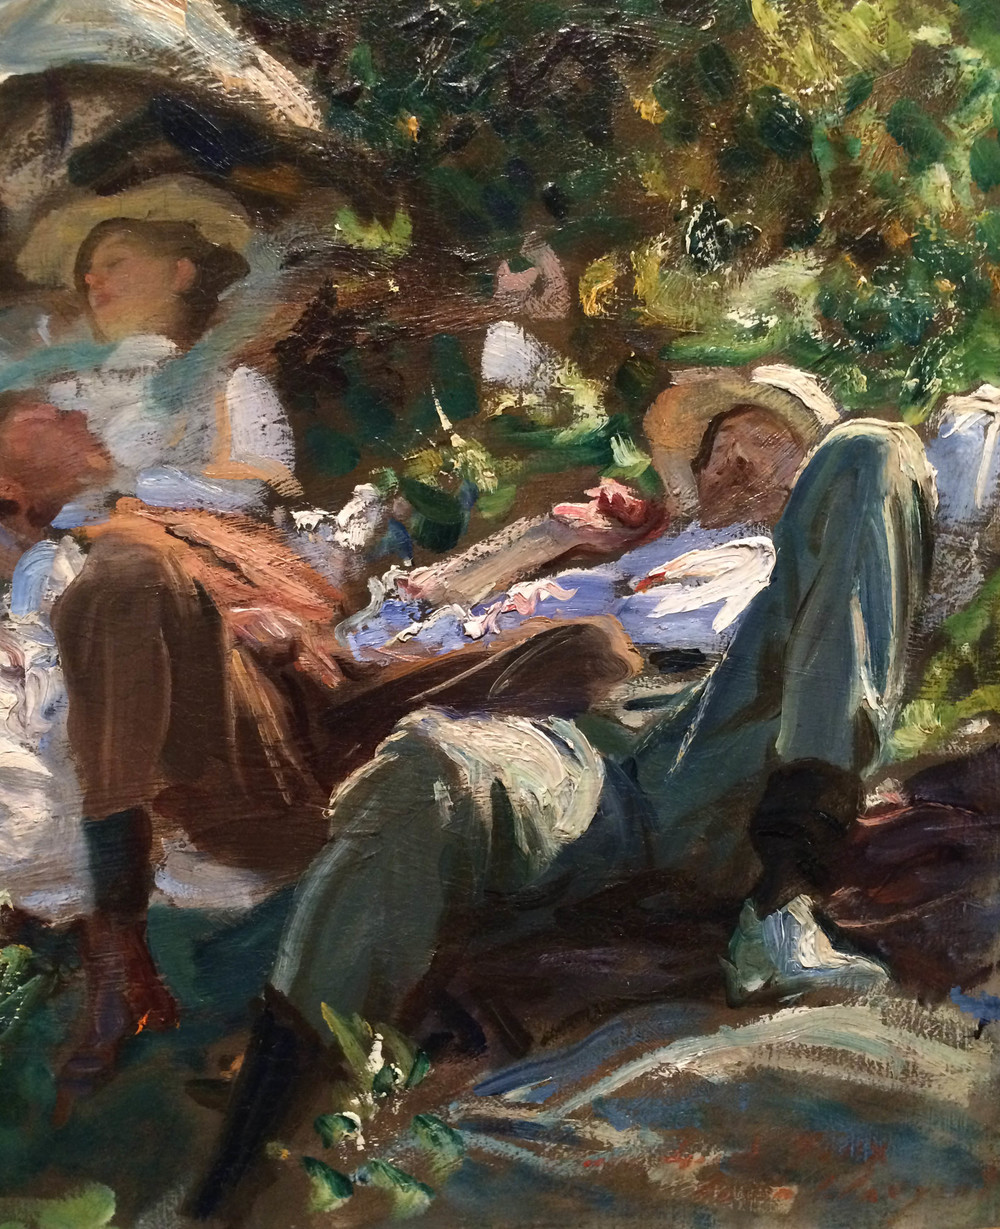 Detail of Sargent painting - click image to enlarge